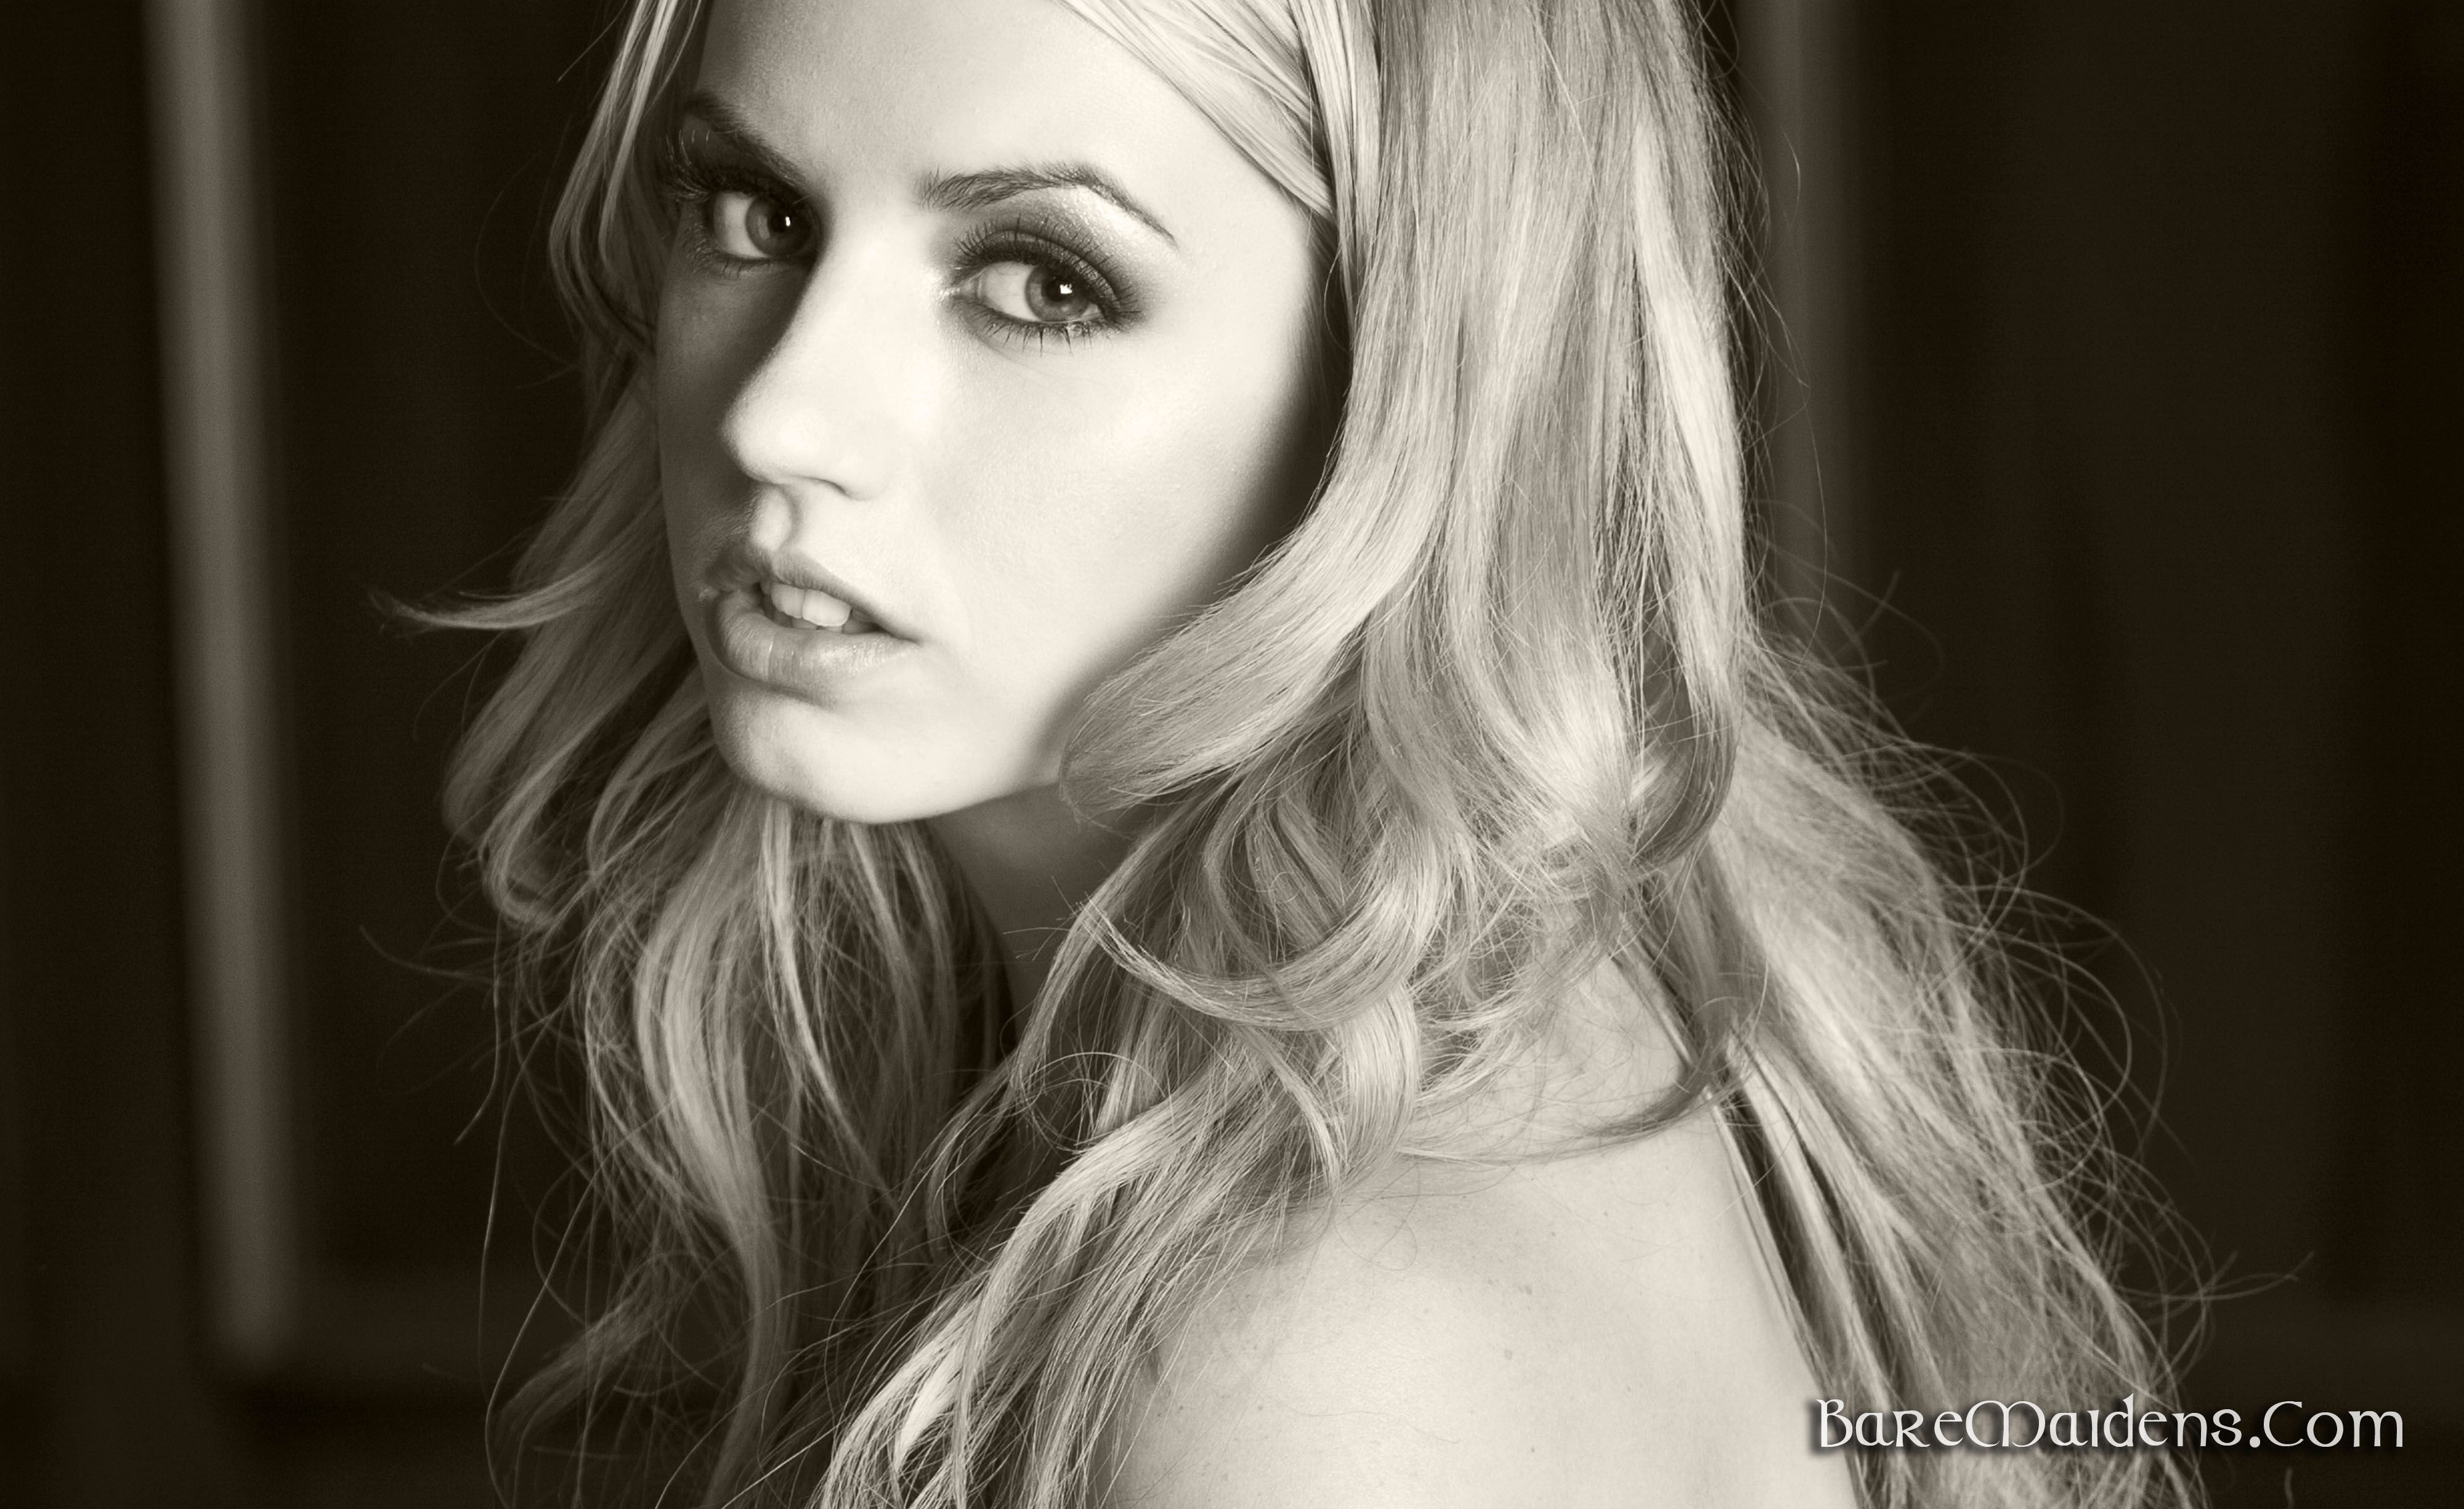 Baremwidends Porn Film Online Free pin on lexi belle